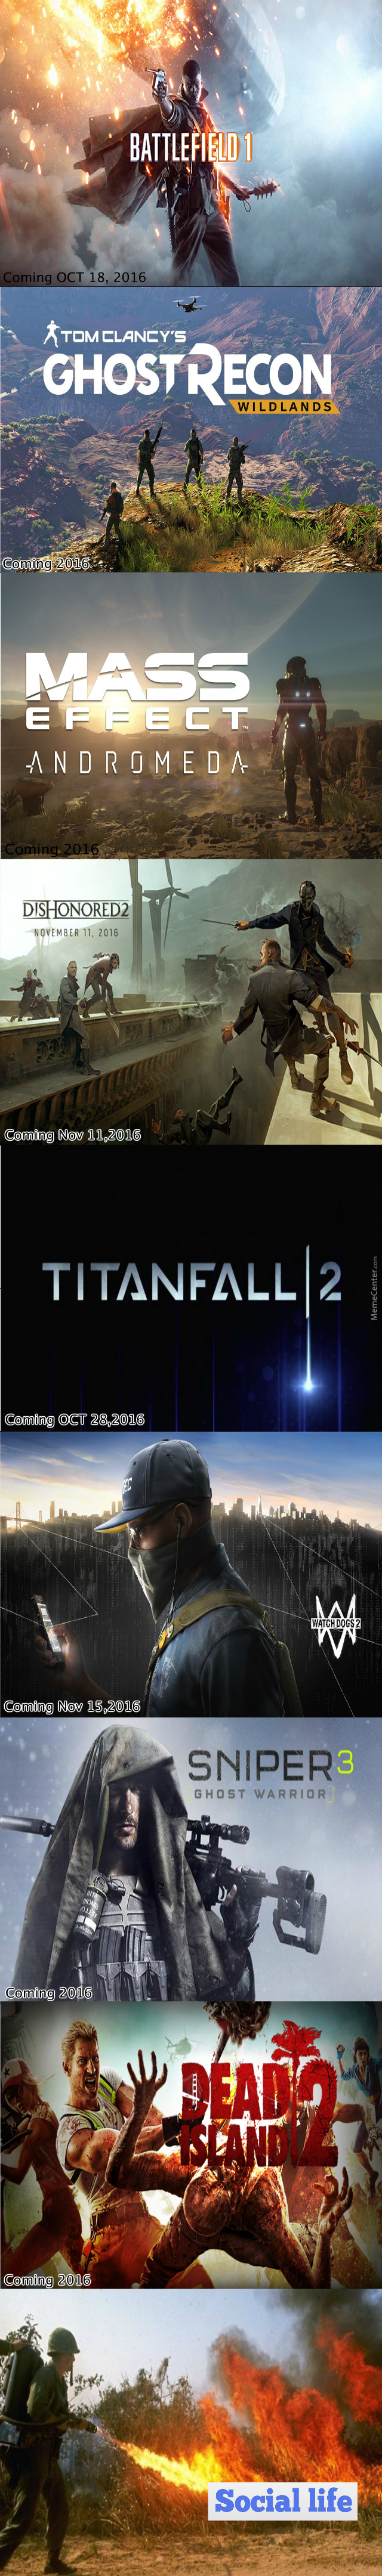 What A Time To Be A Gamer, Lets Hope The Games Are Good